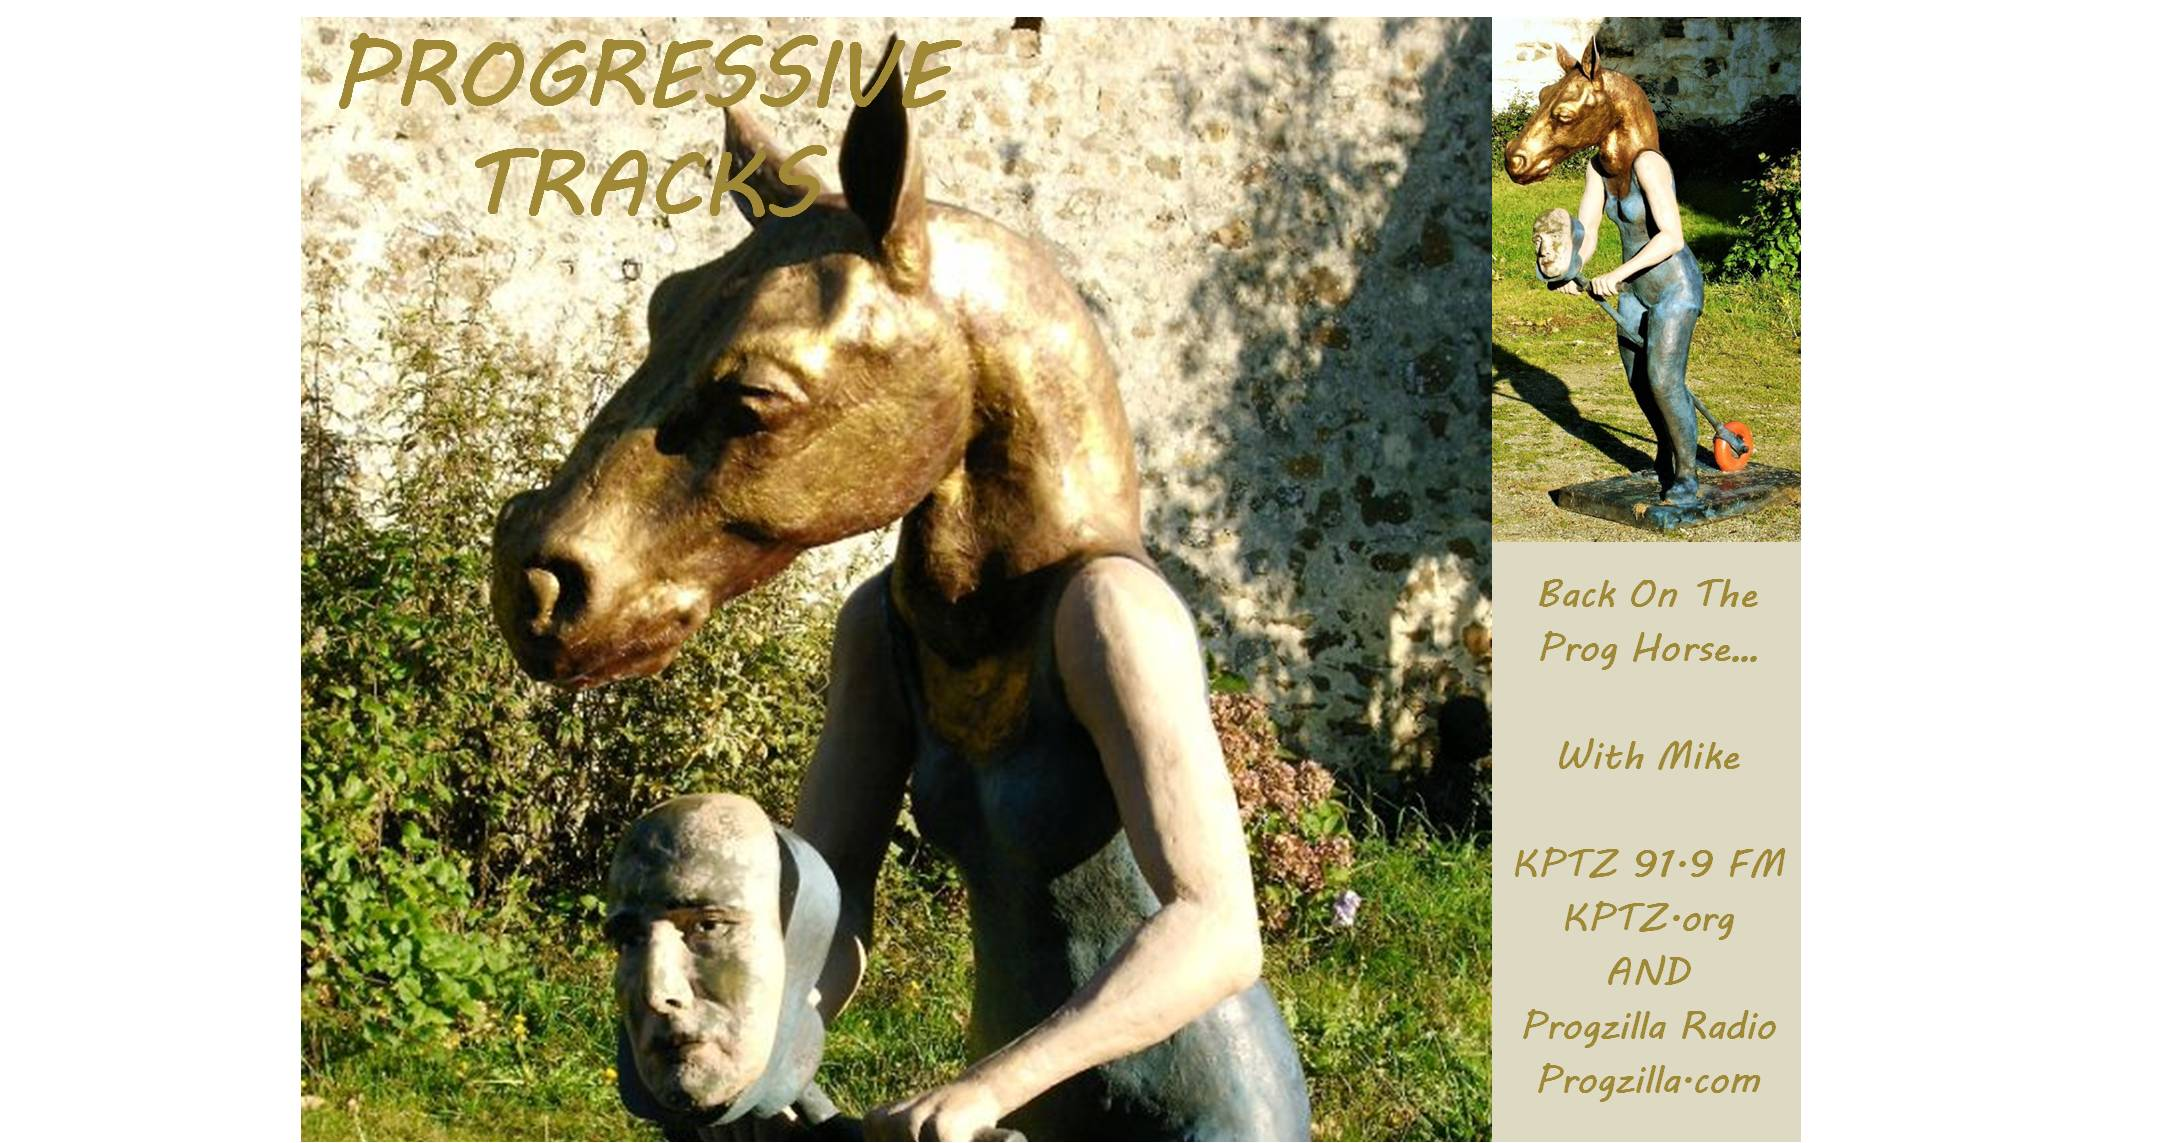 Progressive Tracks #201 - Back on the Prog Horse